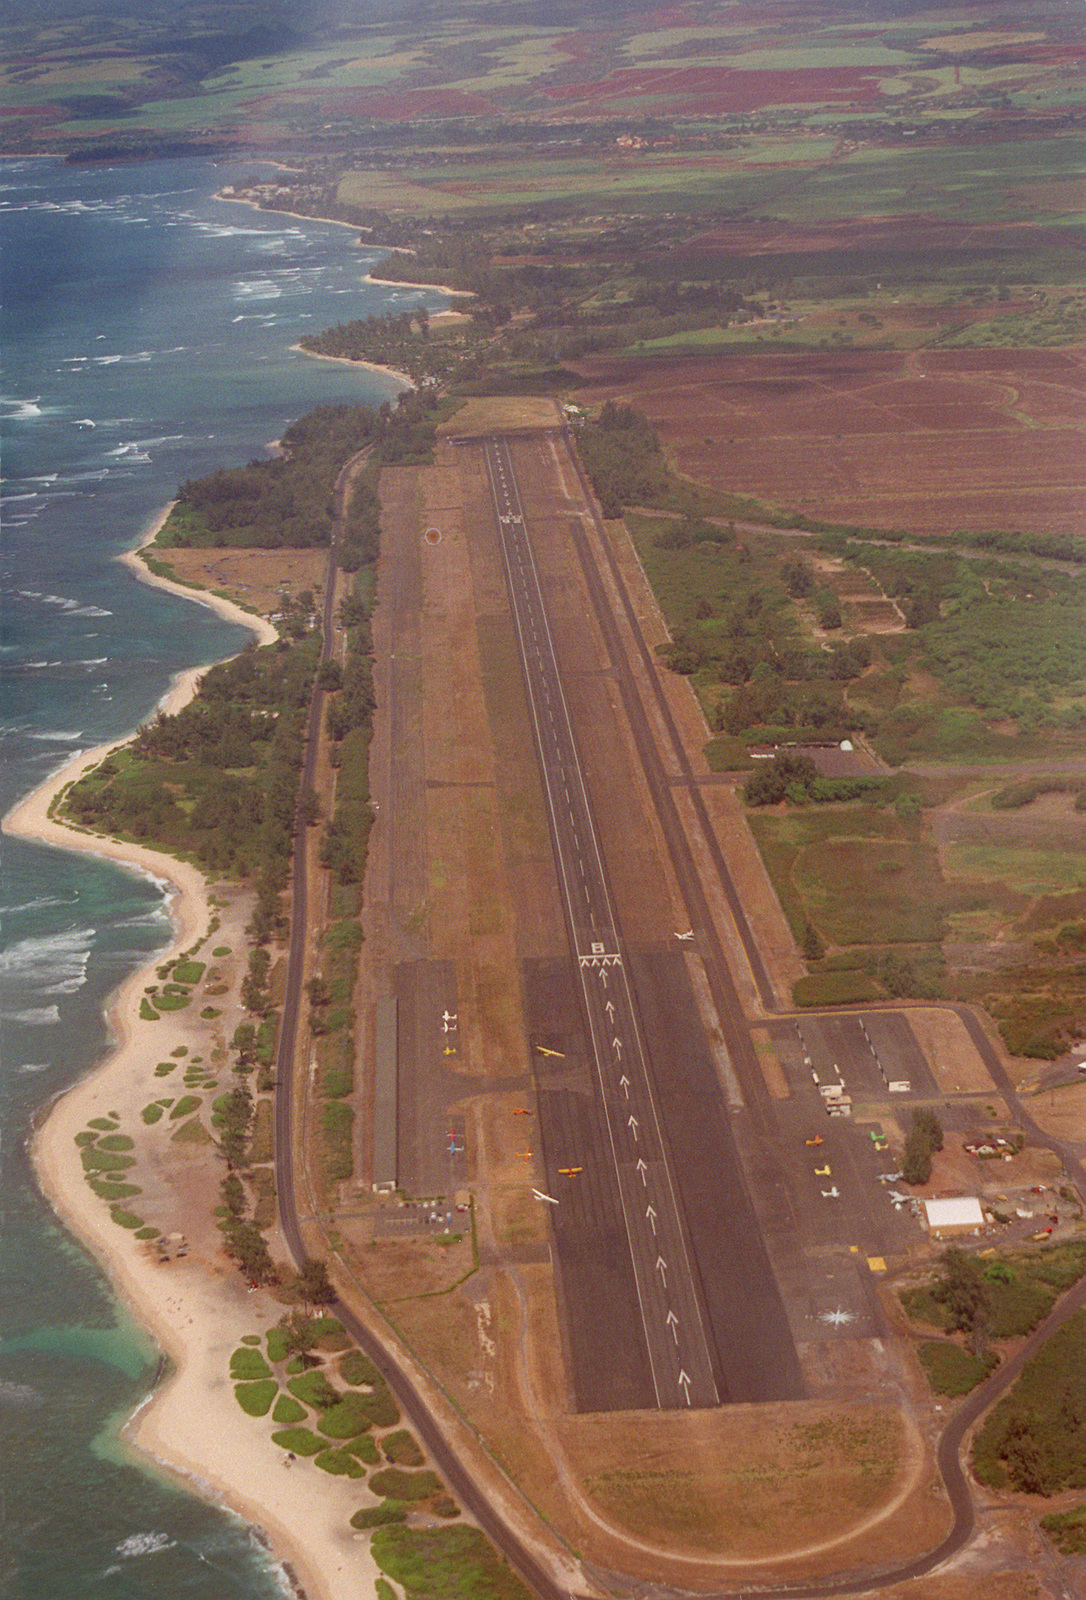 Dillingham Air Field on the northwest corner of the island. This former Air Force base is now used by the Air Force parachute team and flying club as a training site. The 9,000 runway is also available to all the services as an emergency subsidiary landing site